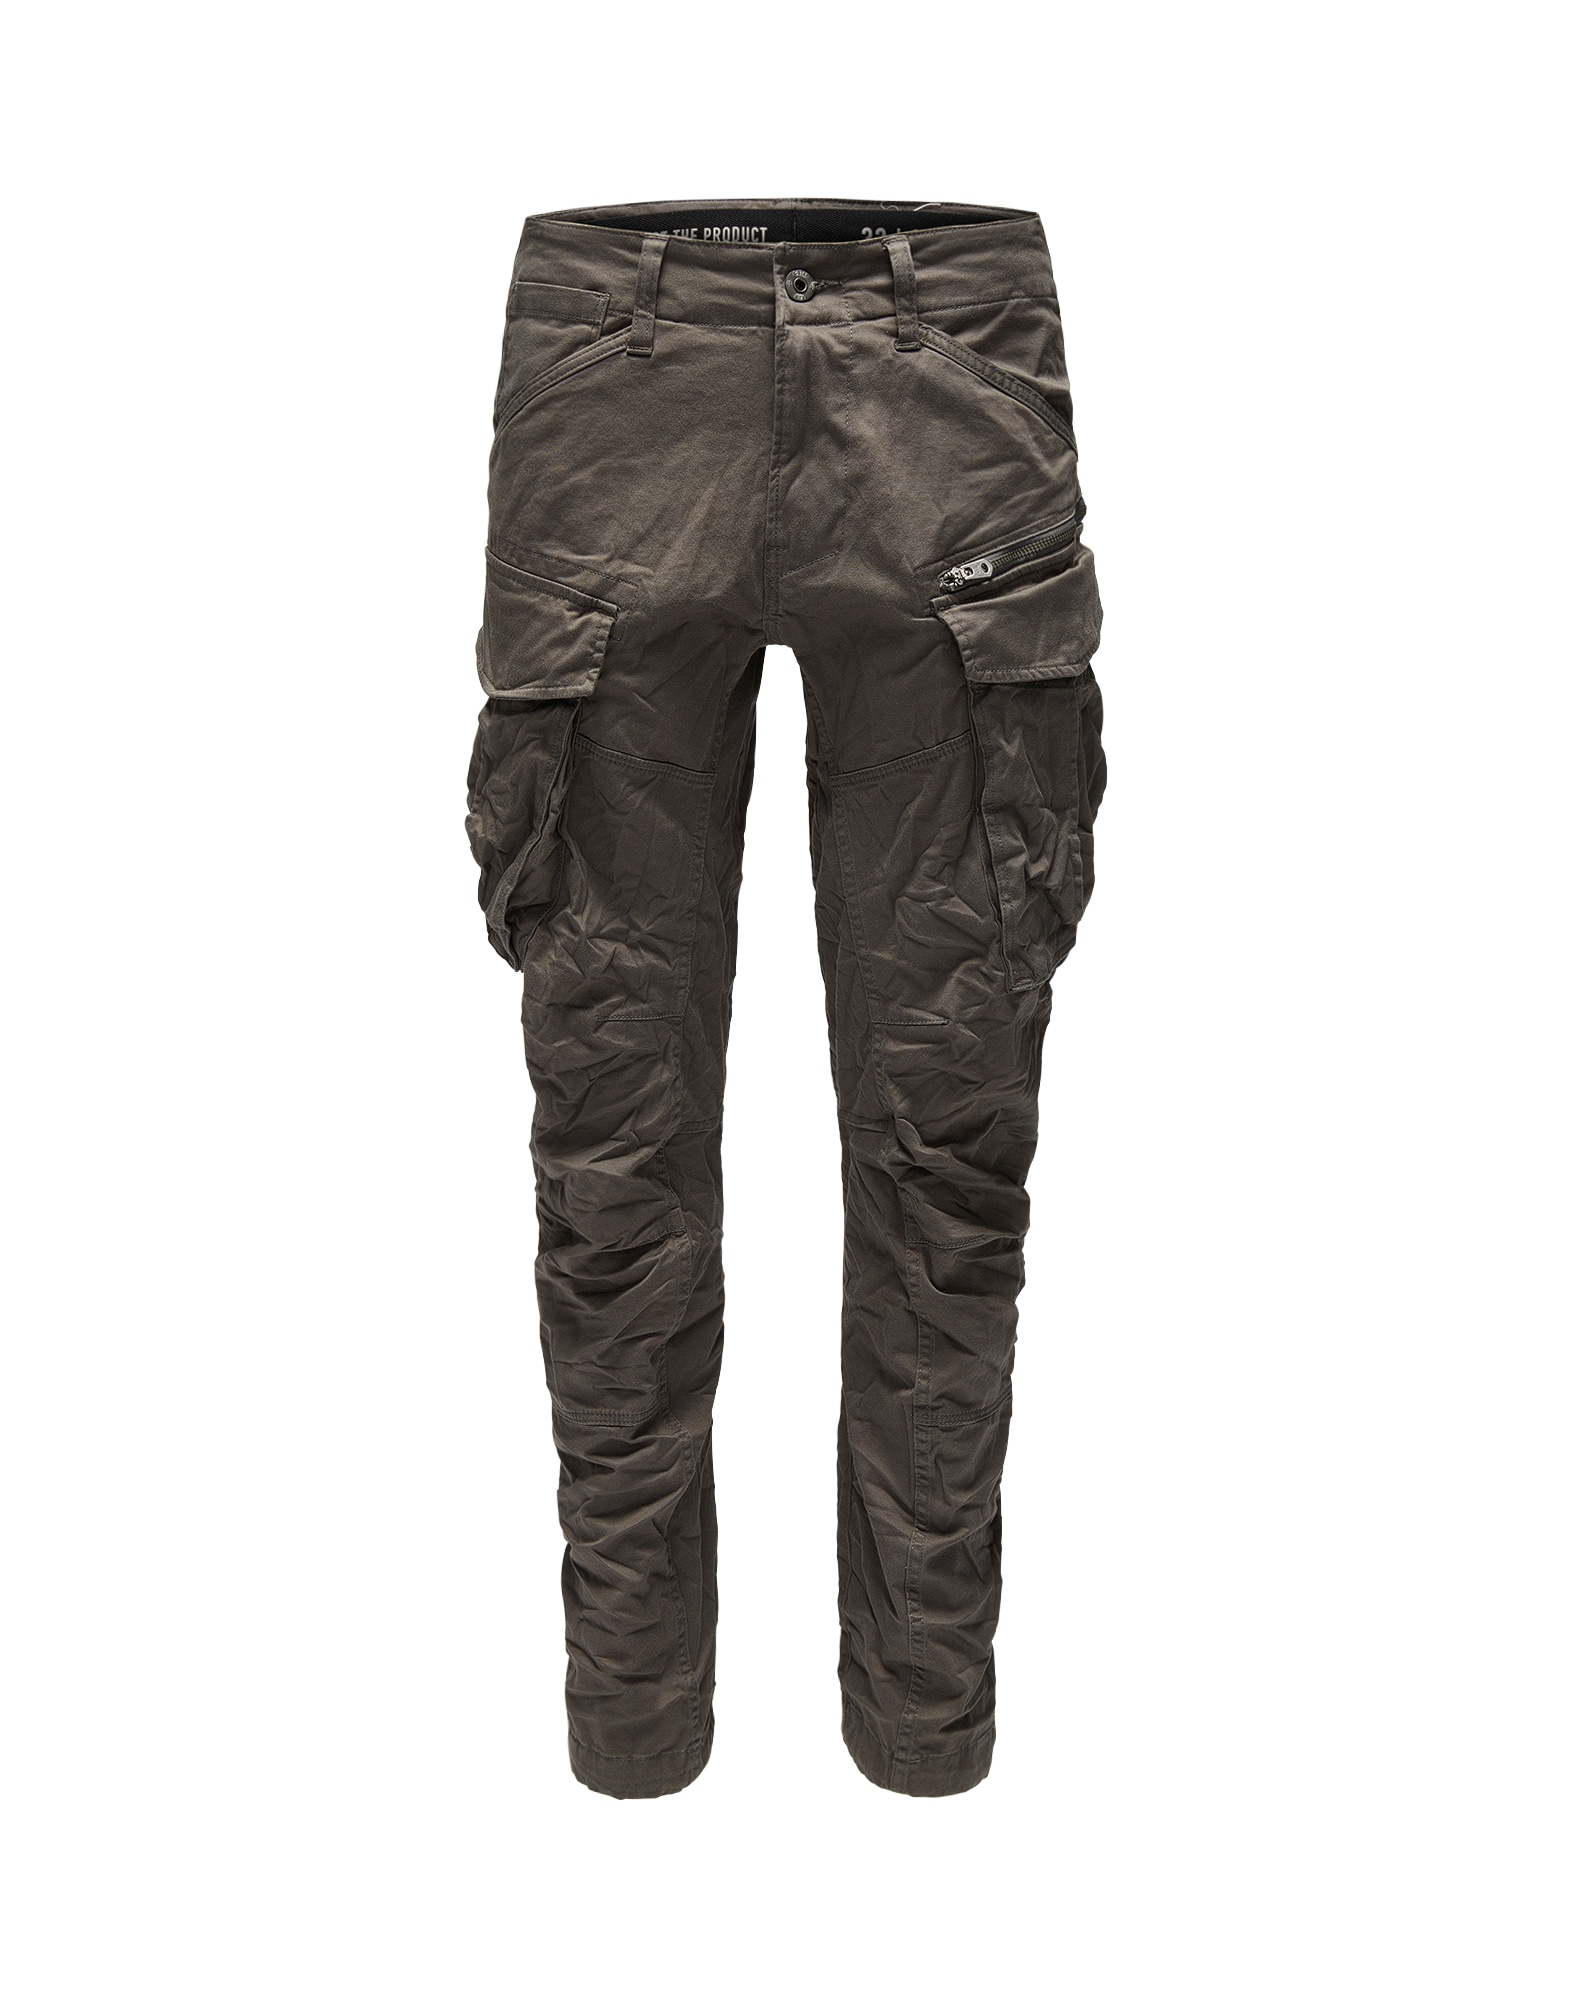 Kapsáče Rovic 3D Tapered khaki G-STAR RAW